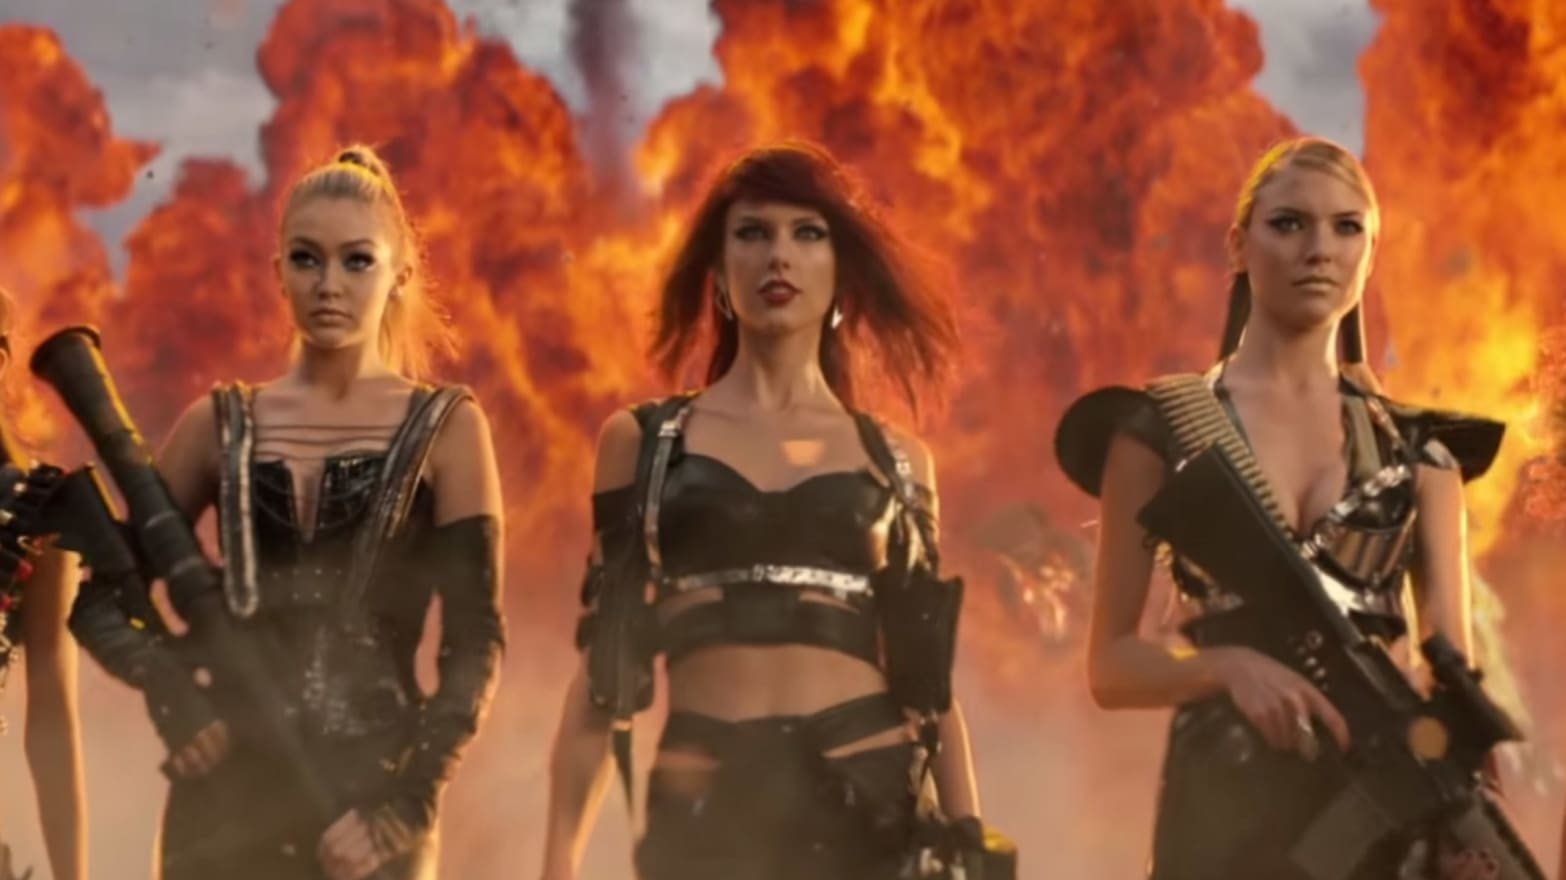 Bad Blood Quotes Taylor Swift Taylor Swift S Bad Blood Hypocrisy An Anthem Fit For